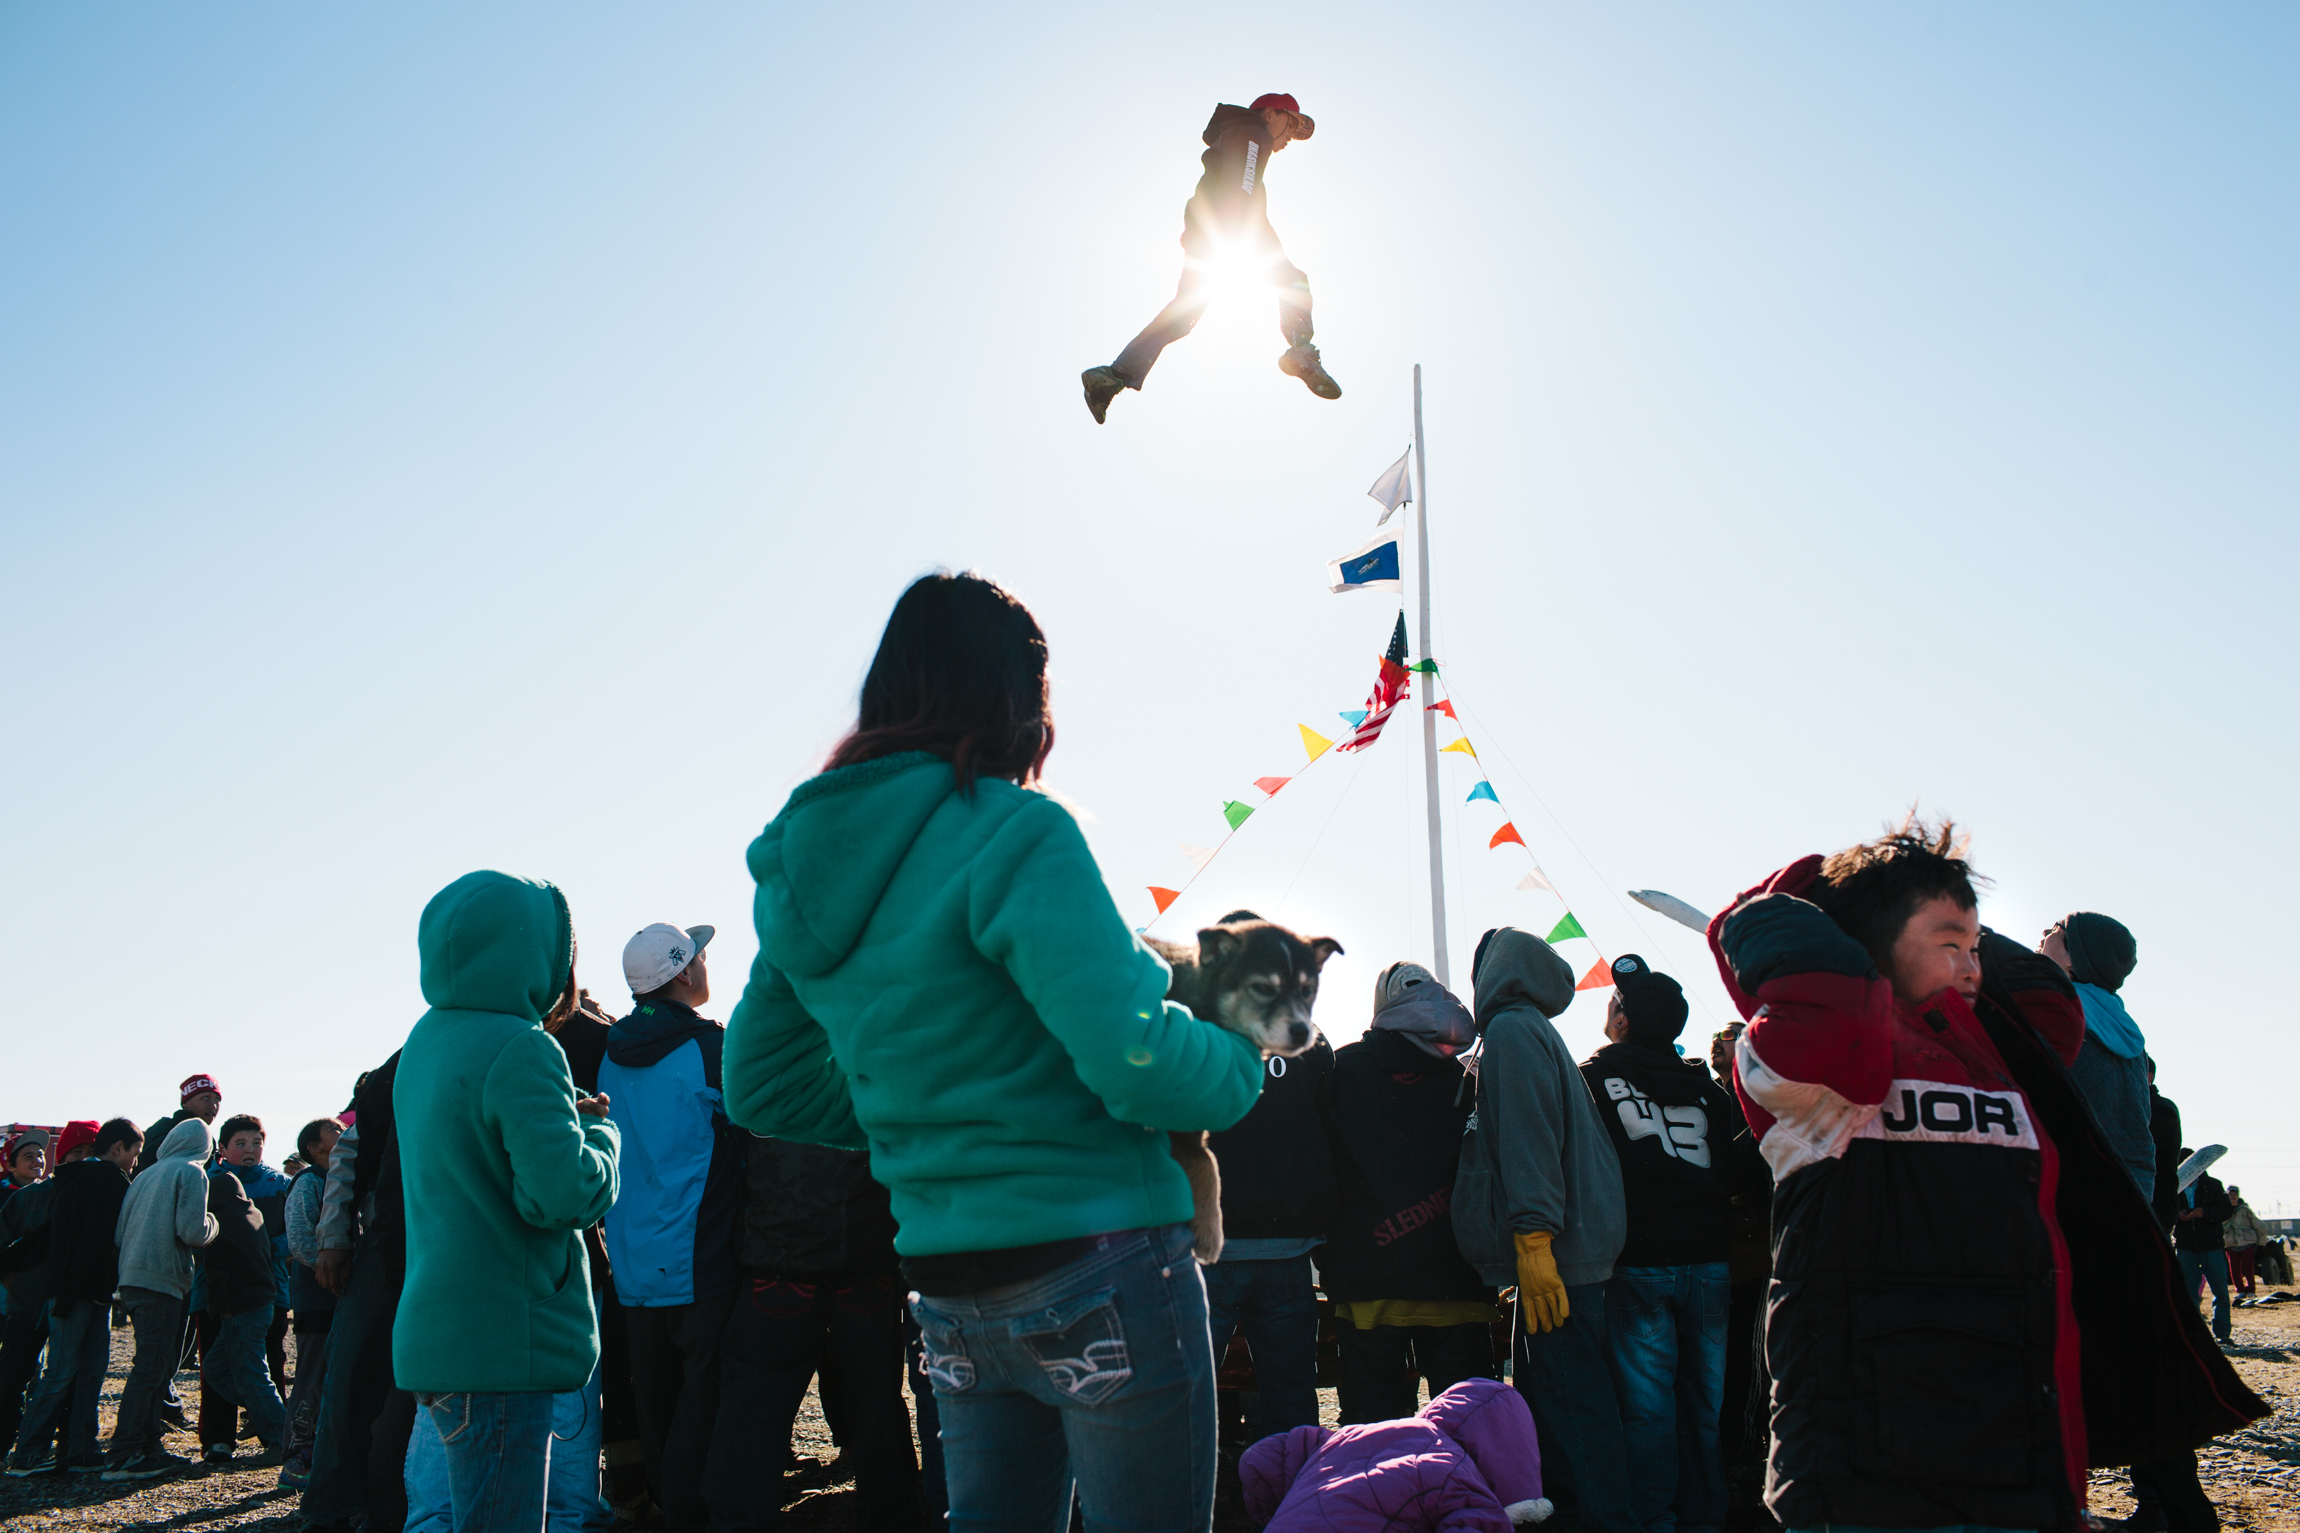 Blanket toss at Point Hope Alaska whaling festival community whale fin carving rural village subsistence